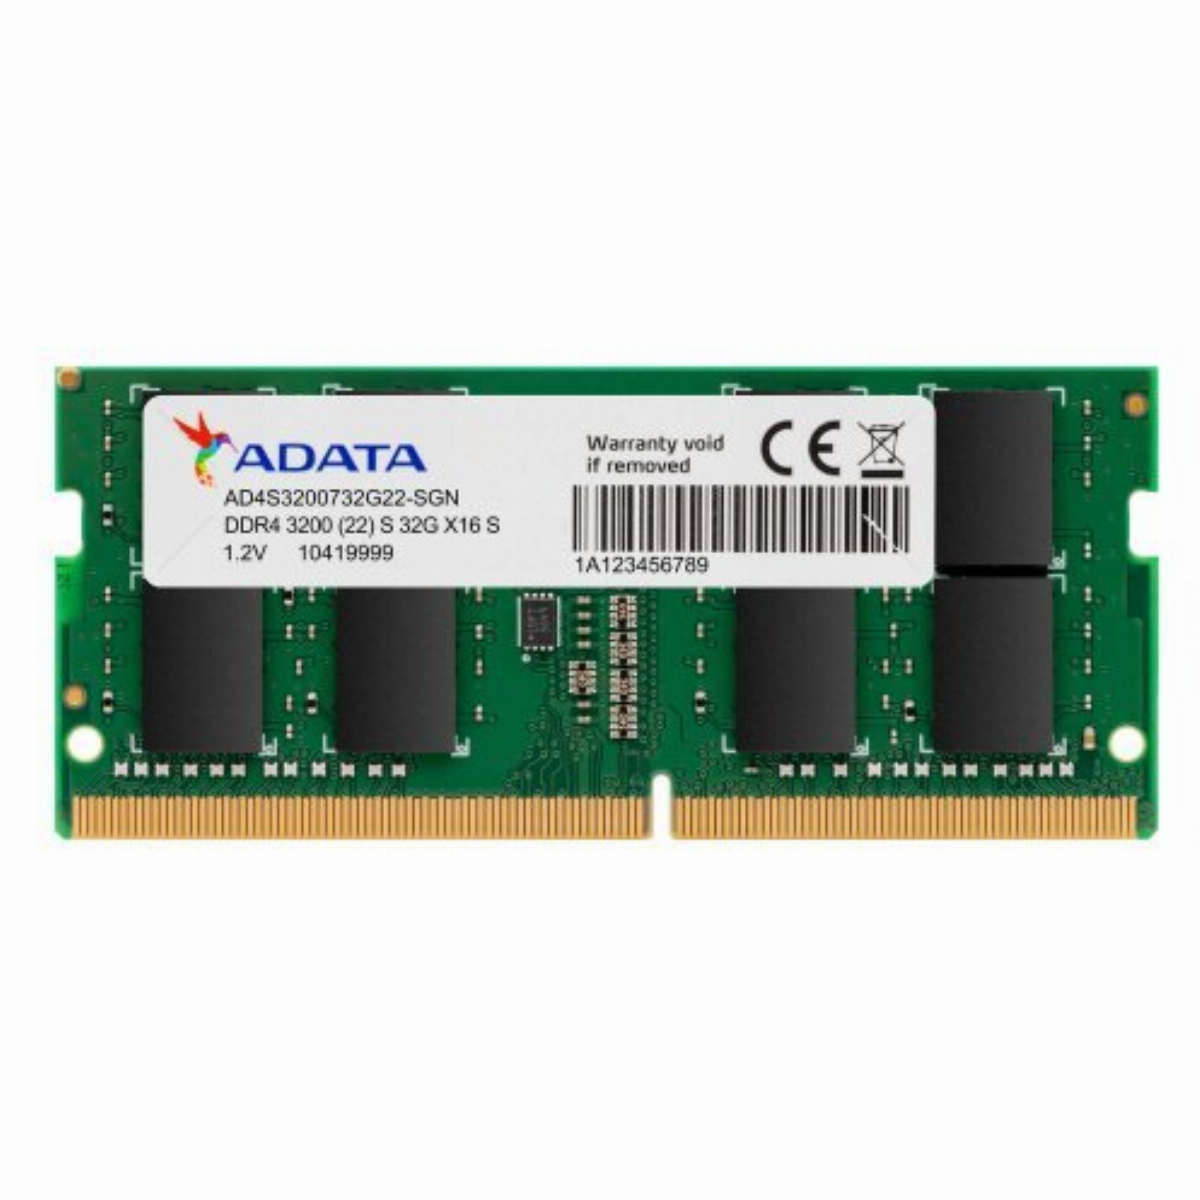 Памет ADATA 32GB DDR4 3200MHz CL22 SODIMM - AD4S320032G22-SGN